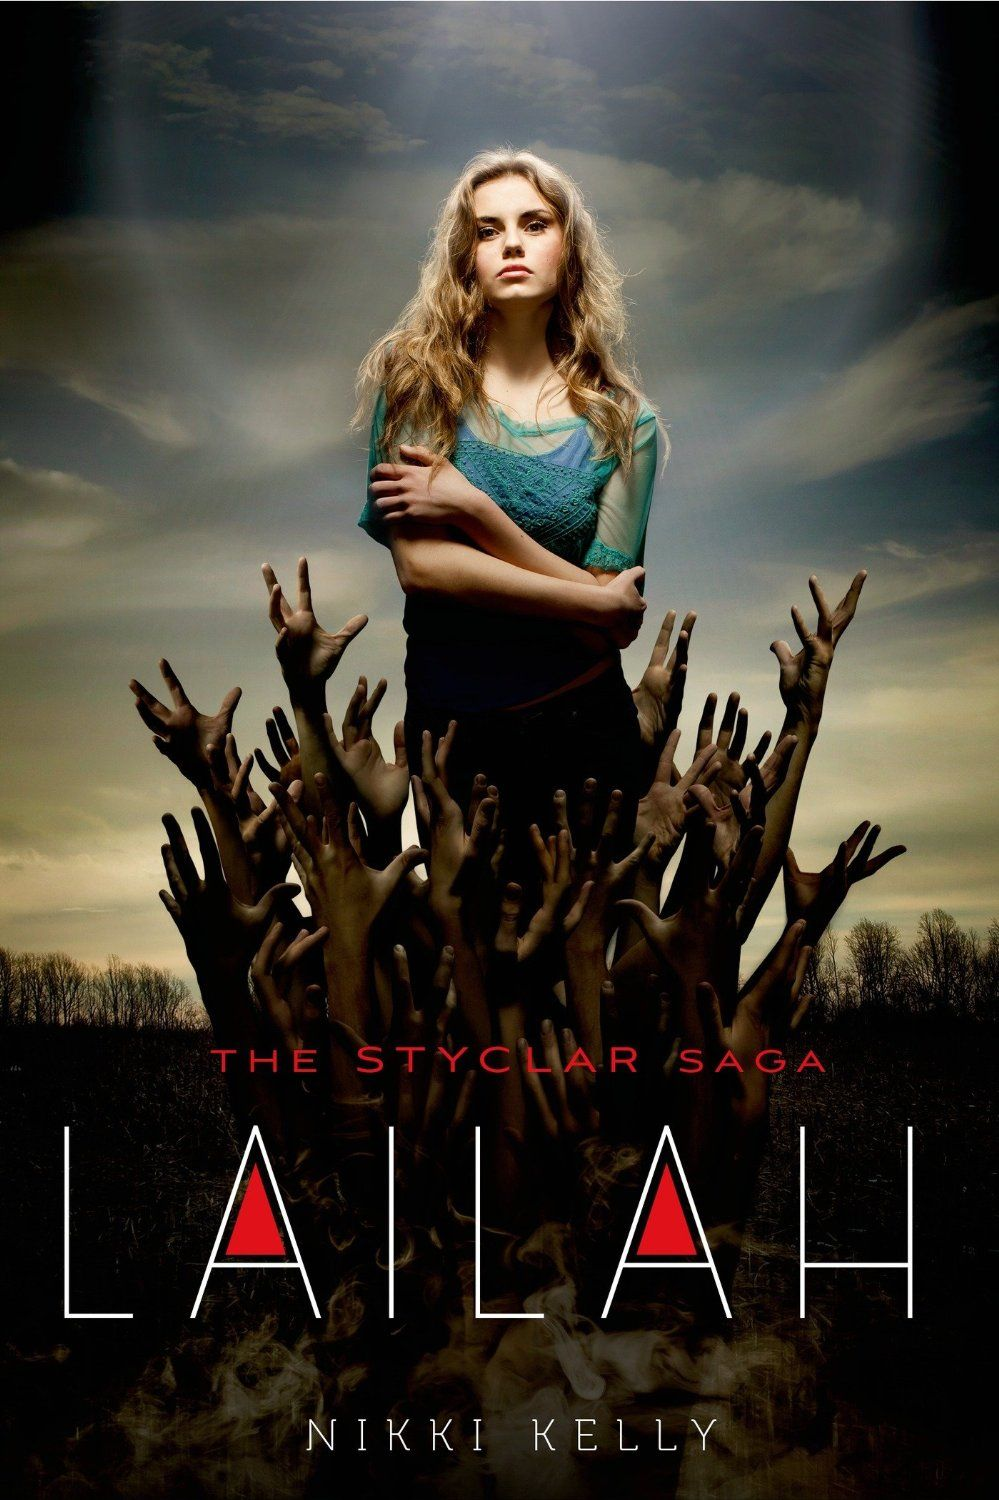 The amazingly beautiful cover for Lailah book 1 in the Styclar Saga! Props to the cover designer! :D